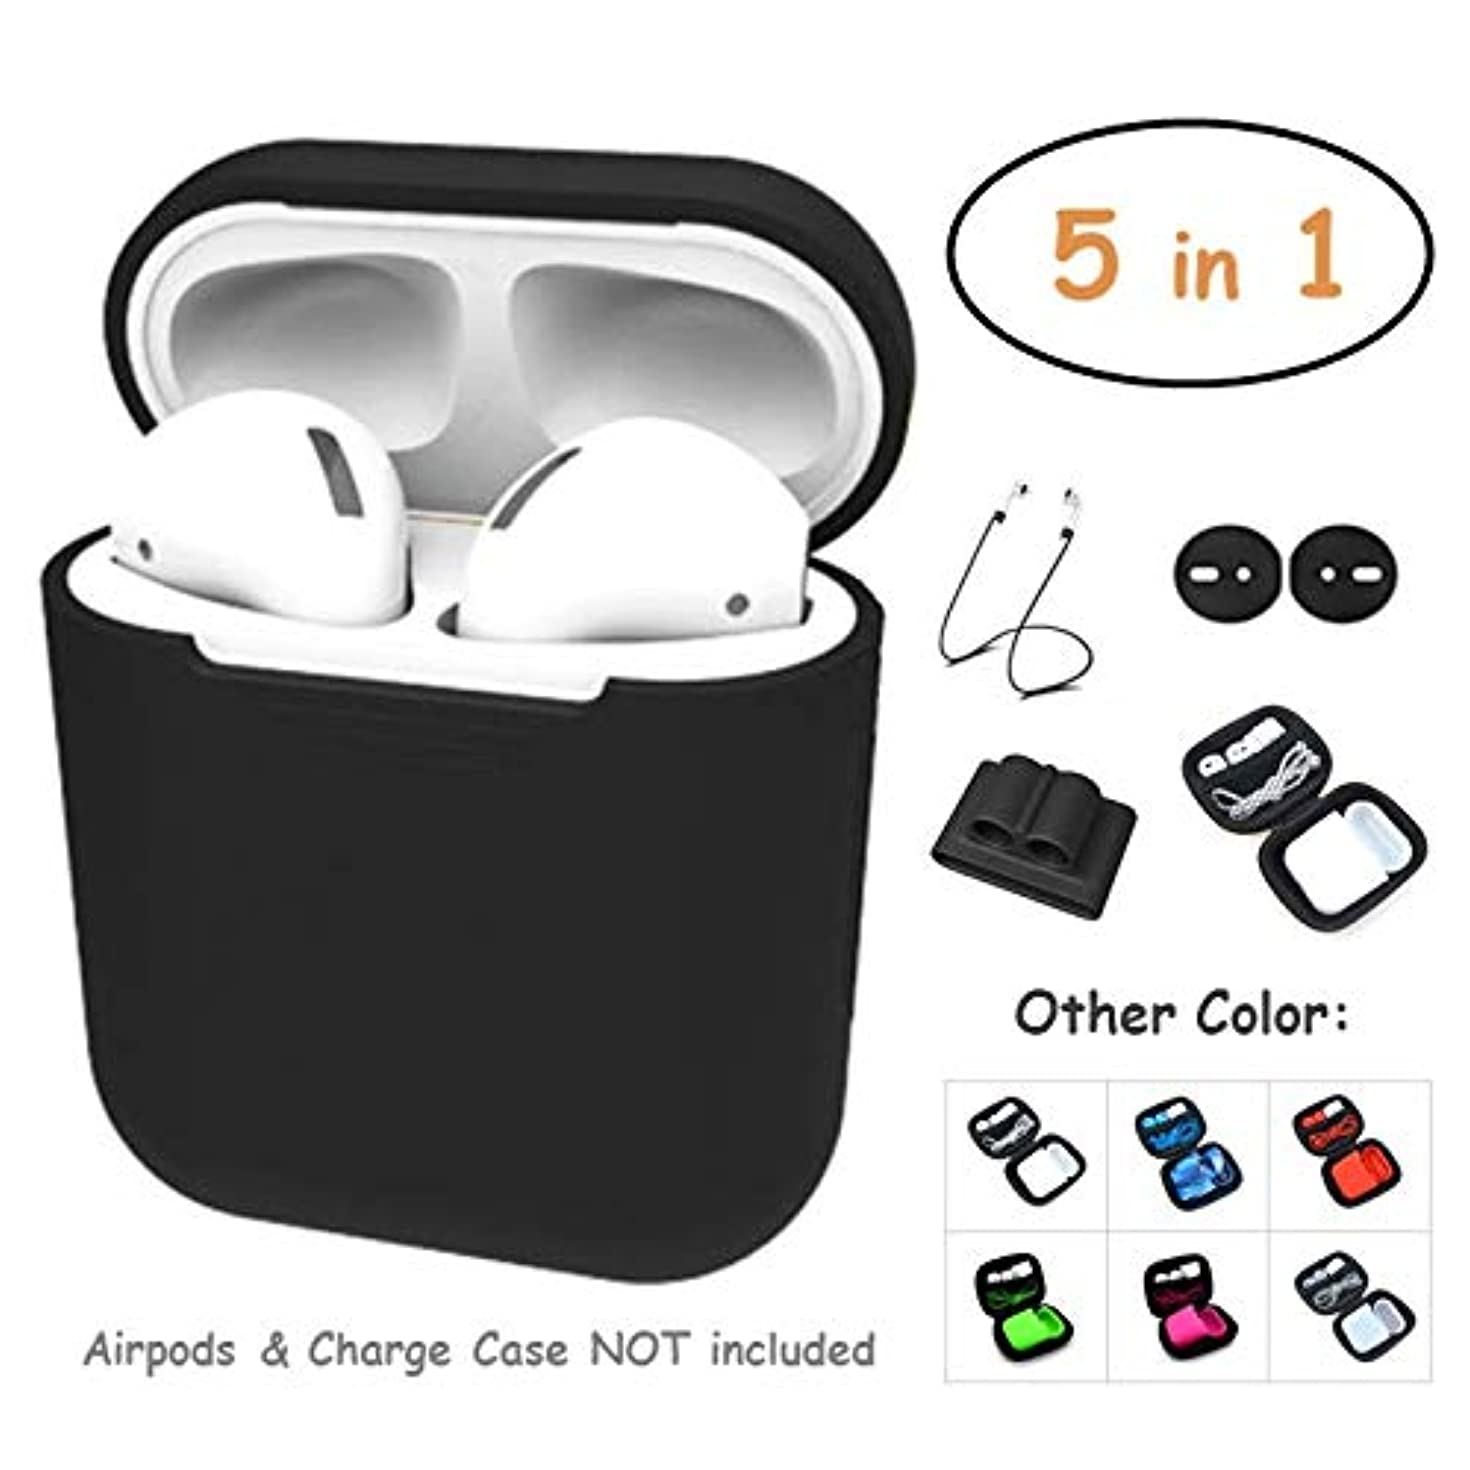 AirPods Case 5 in 1 Airpods Accessories Kits Protective Silicone Cover and Skin for Apple Airpods Charging Case/Airpods Clips/Skin/Tips/Airpods Watch Band Holder by UB (Black)